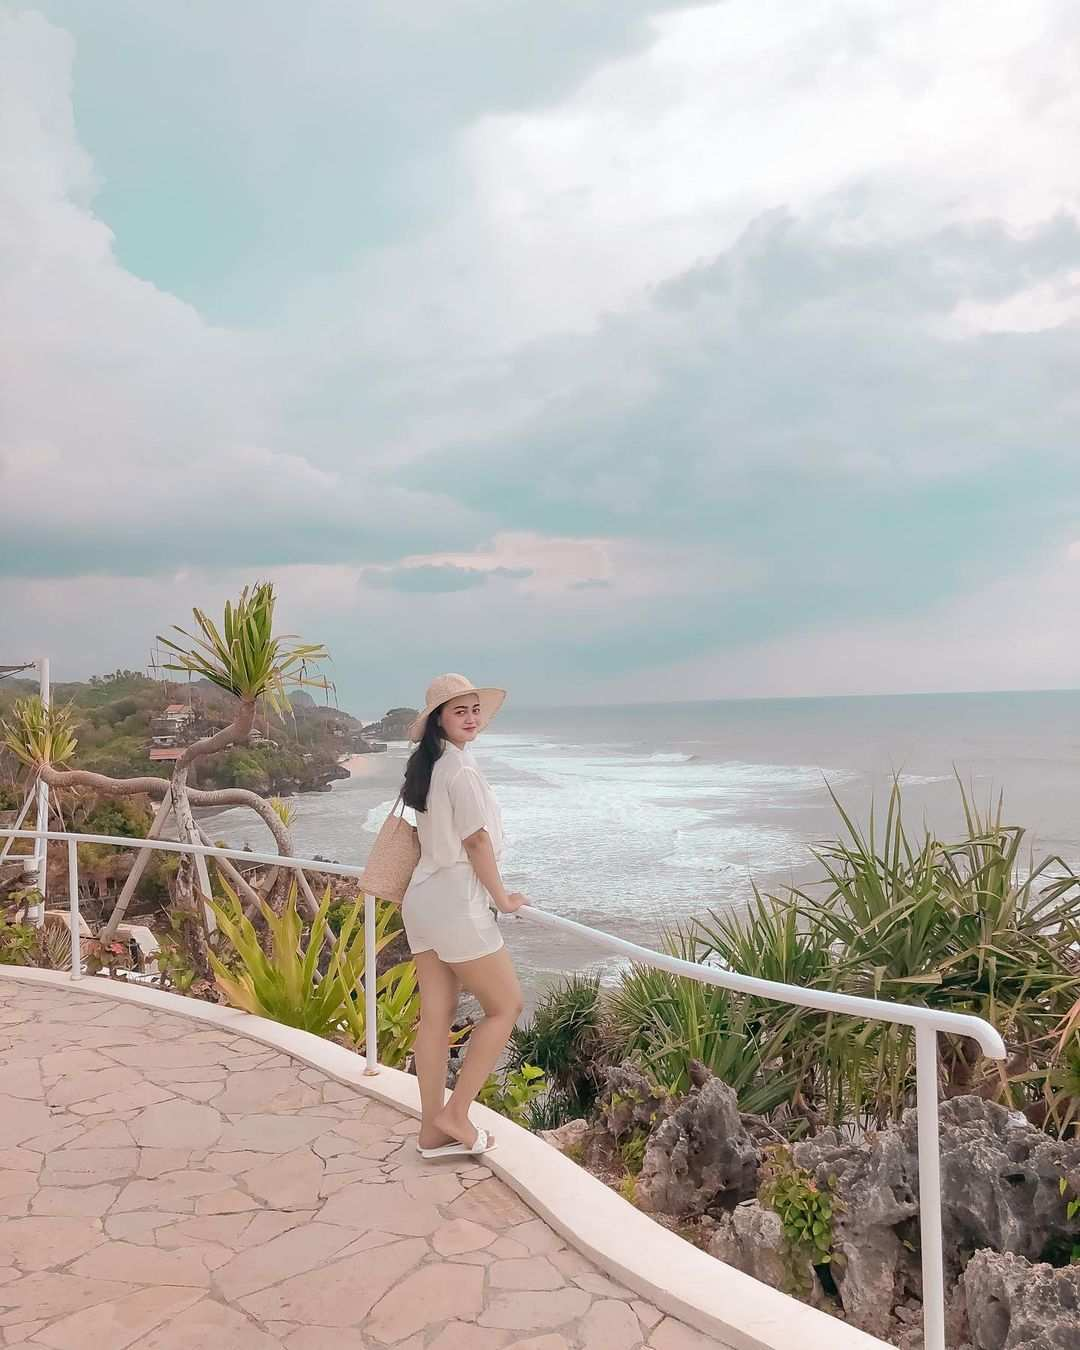 View di South Shore Jogja Image From @its.elvireal